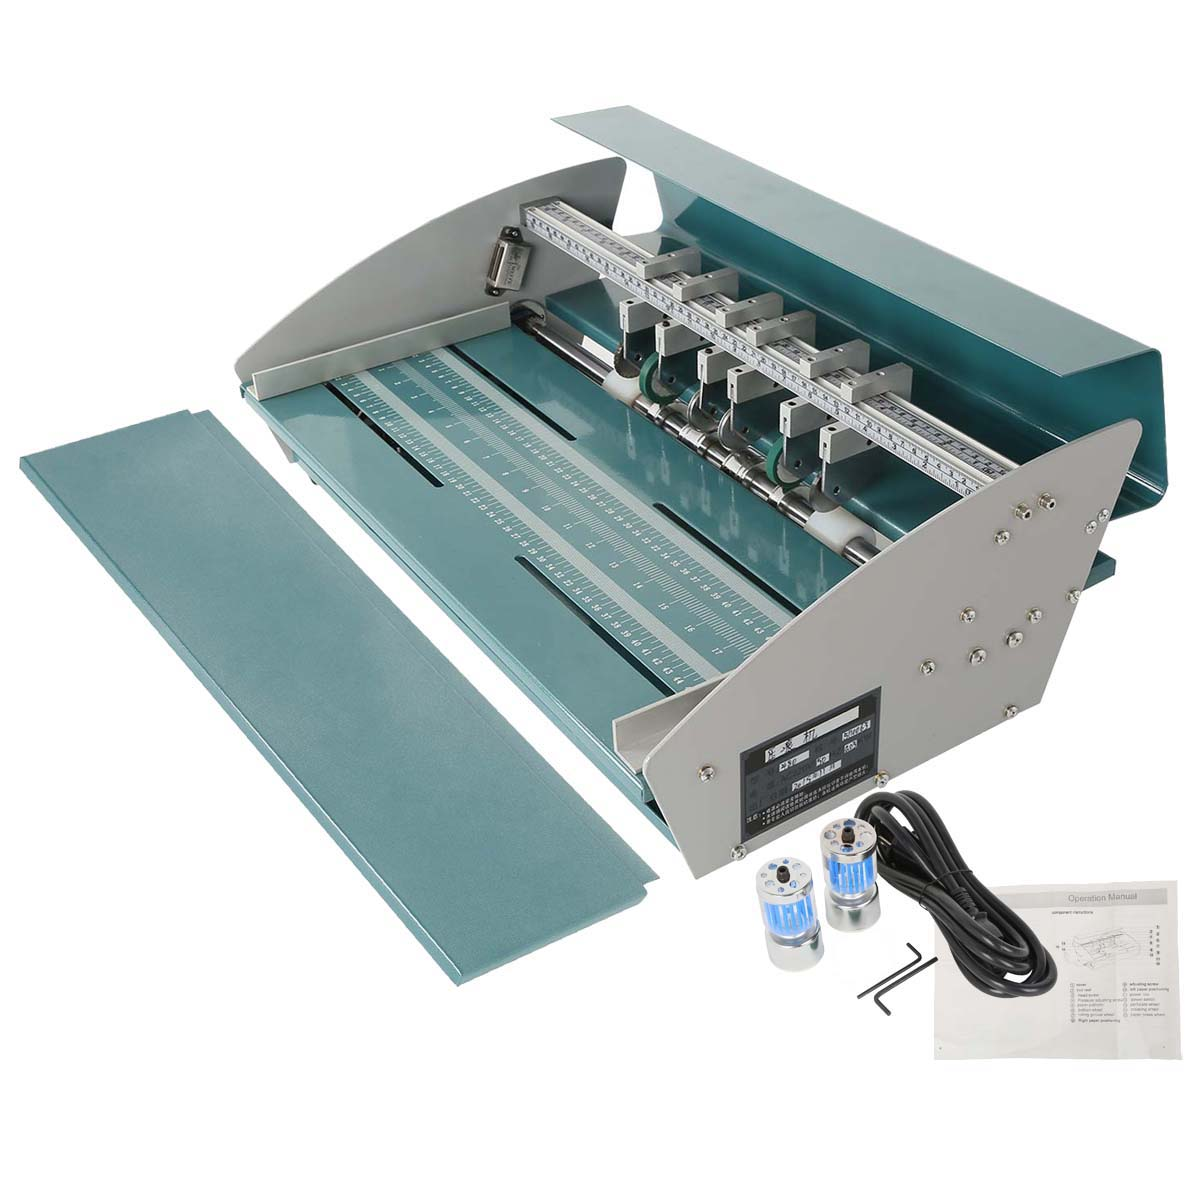 paper scorer Choose from our selection to find the perfect paper creaser, perforator, or scoring machine for small to professional high-volume tasks free shipping over $75.